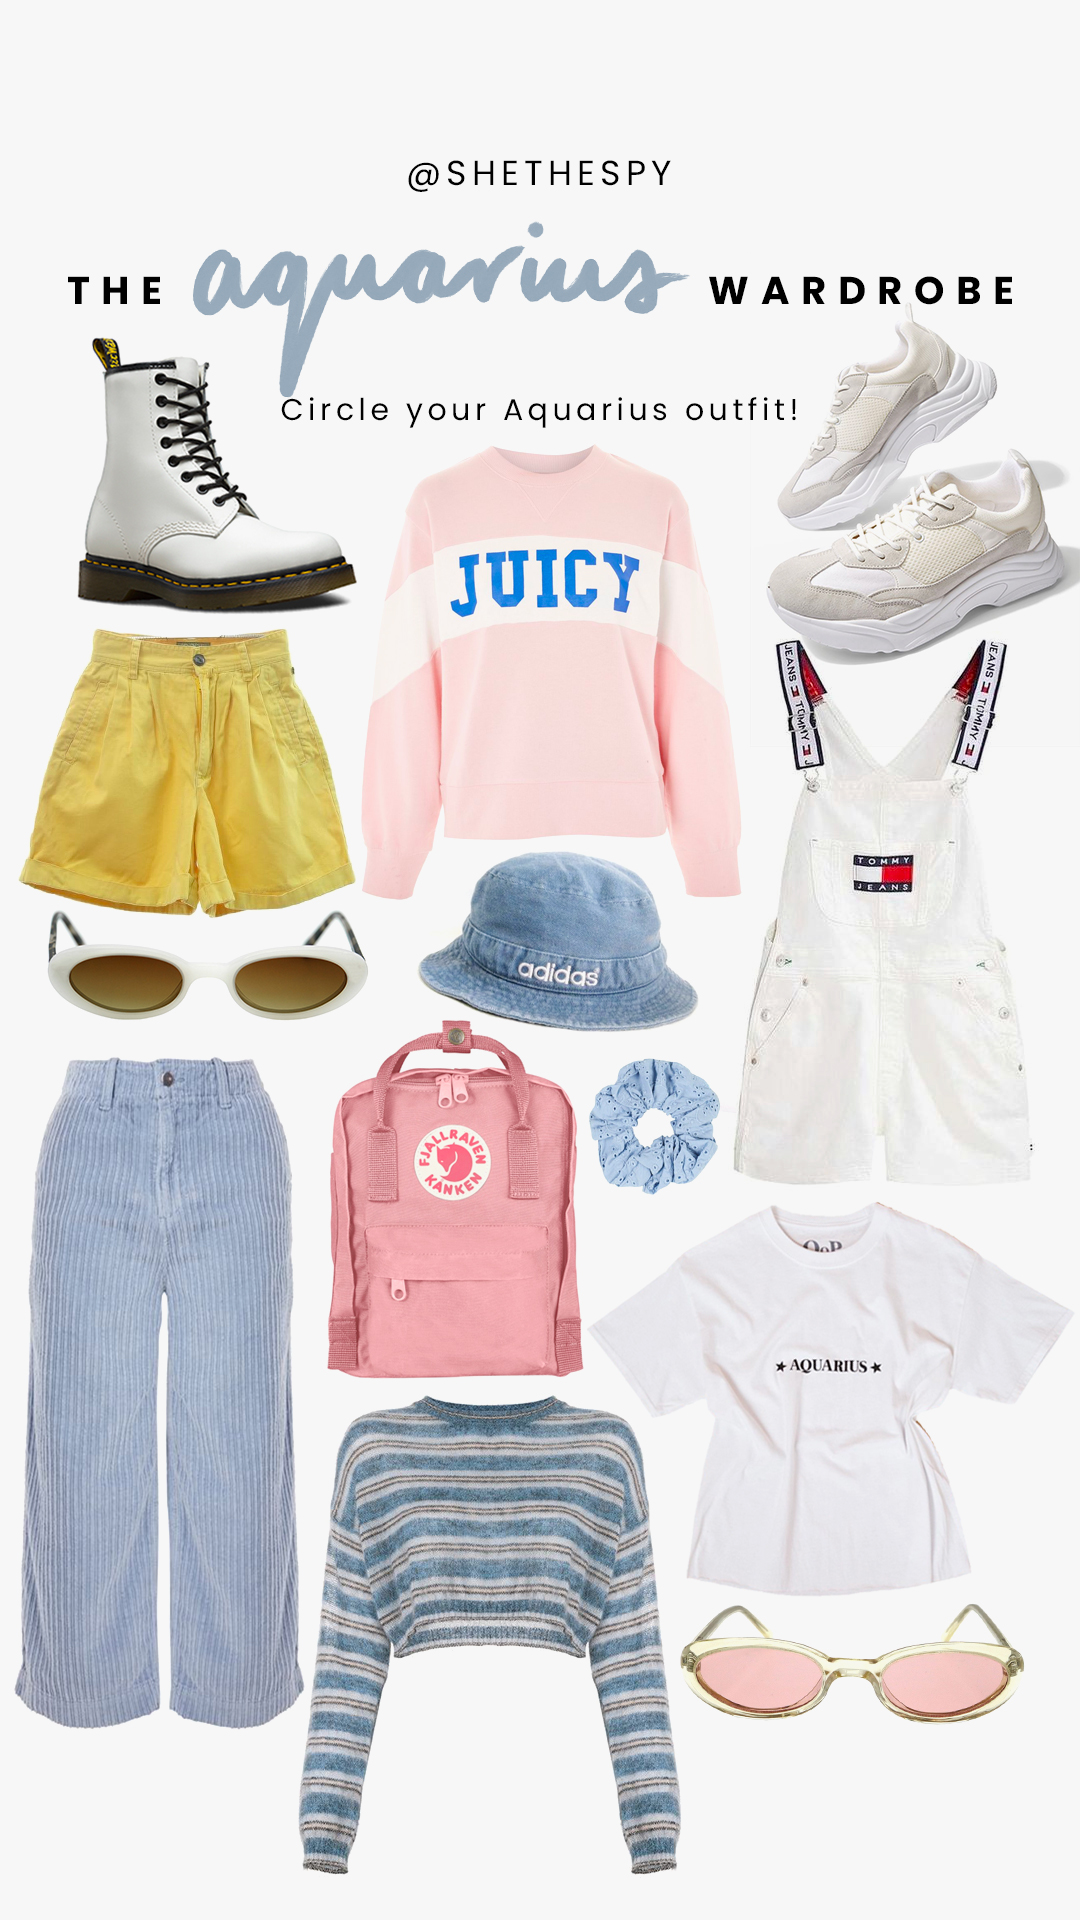 Shop Aquarius - Boots: Dr MartensJuicy sweater: TopshopSneakers: TopshopWhite sunglasses: ShevokeHat: Similar at Urban OutfittersOveralls: Tommy JeansScrunchie:Similar at Urban OutfittersPants: TopshopBackpack: FjallravenStripe sweater: UnknownTee: Princess PollyPink sunglasses: Shevoke